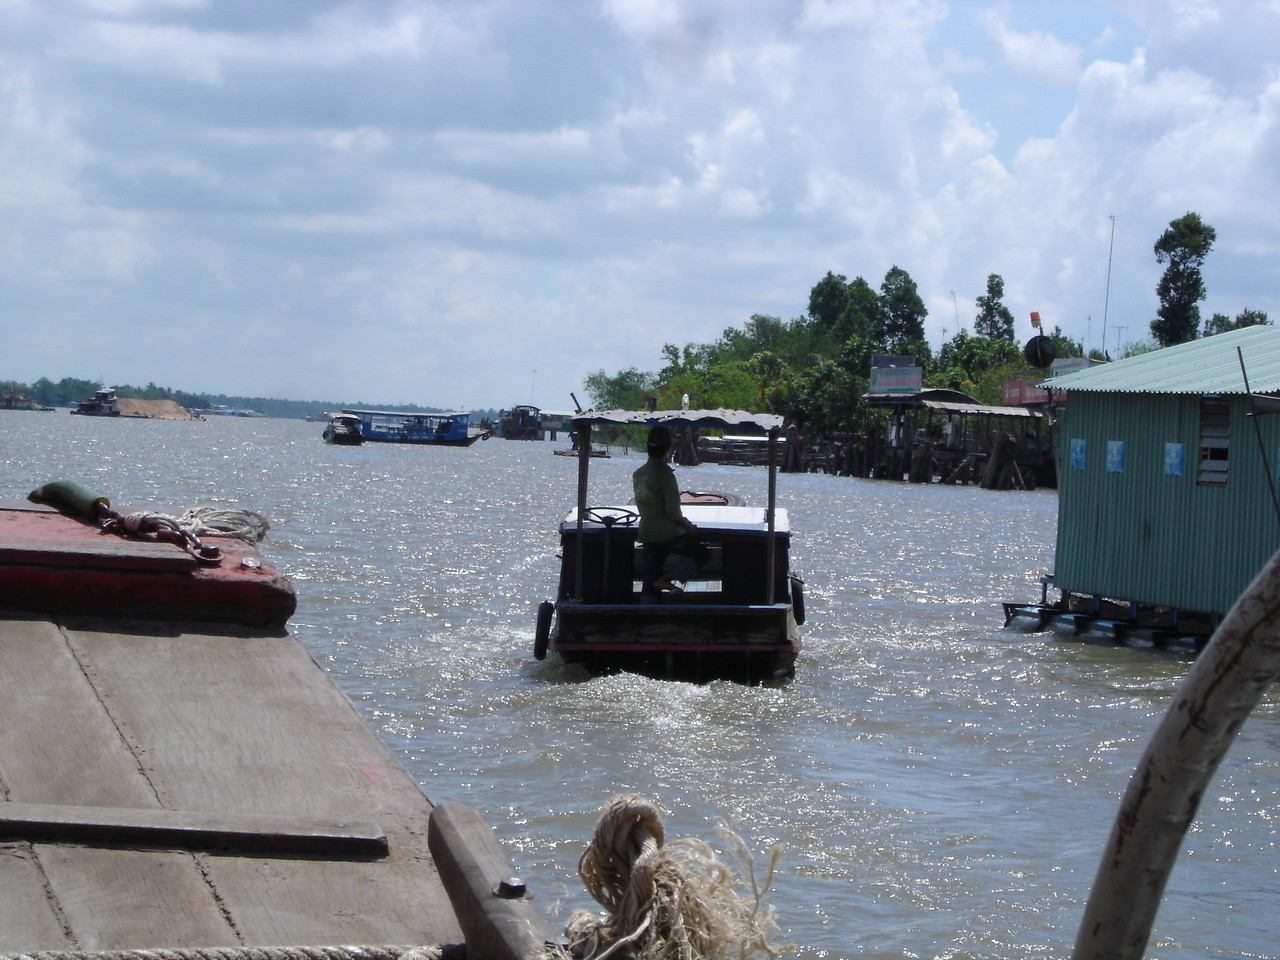 A boat trip down the Mekong River.